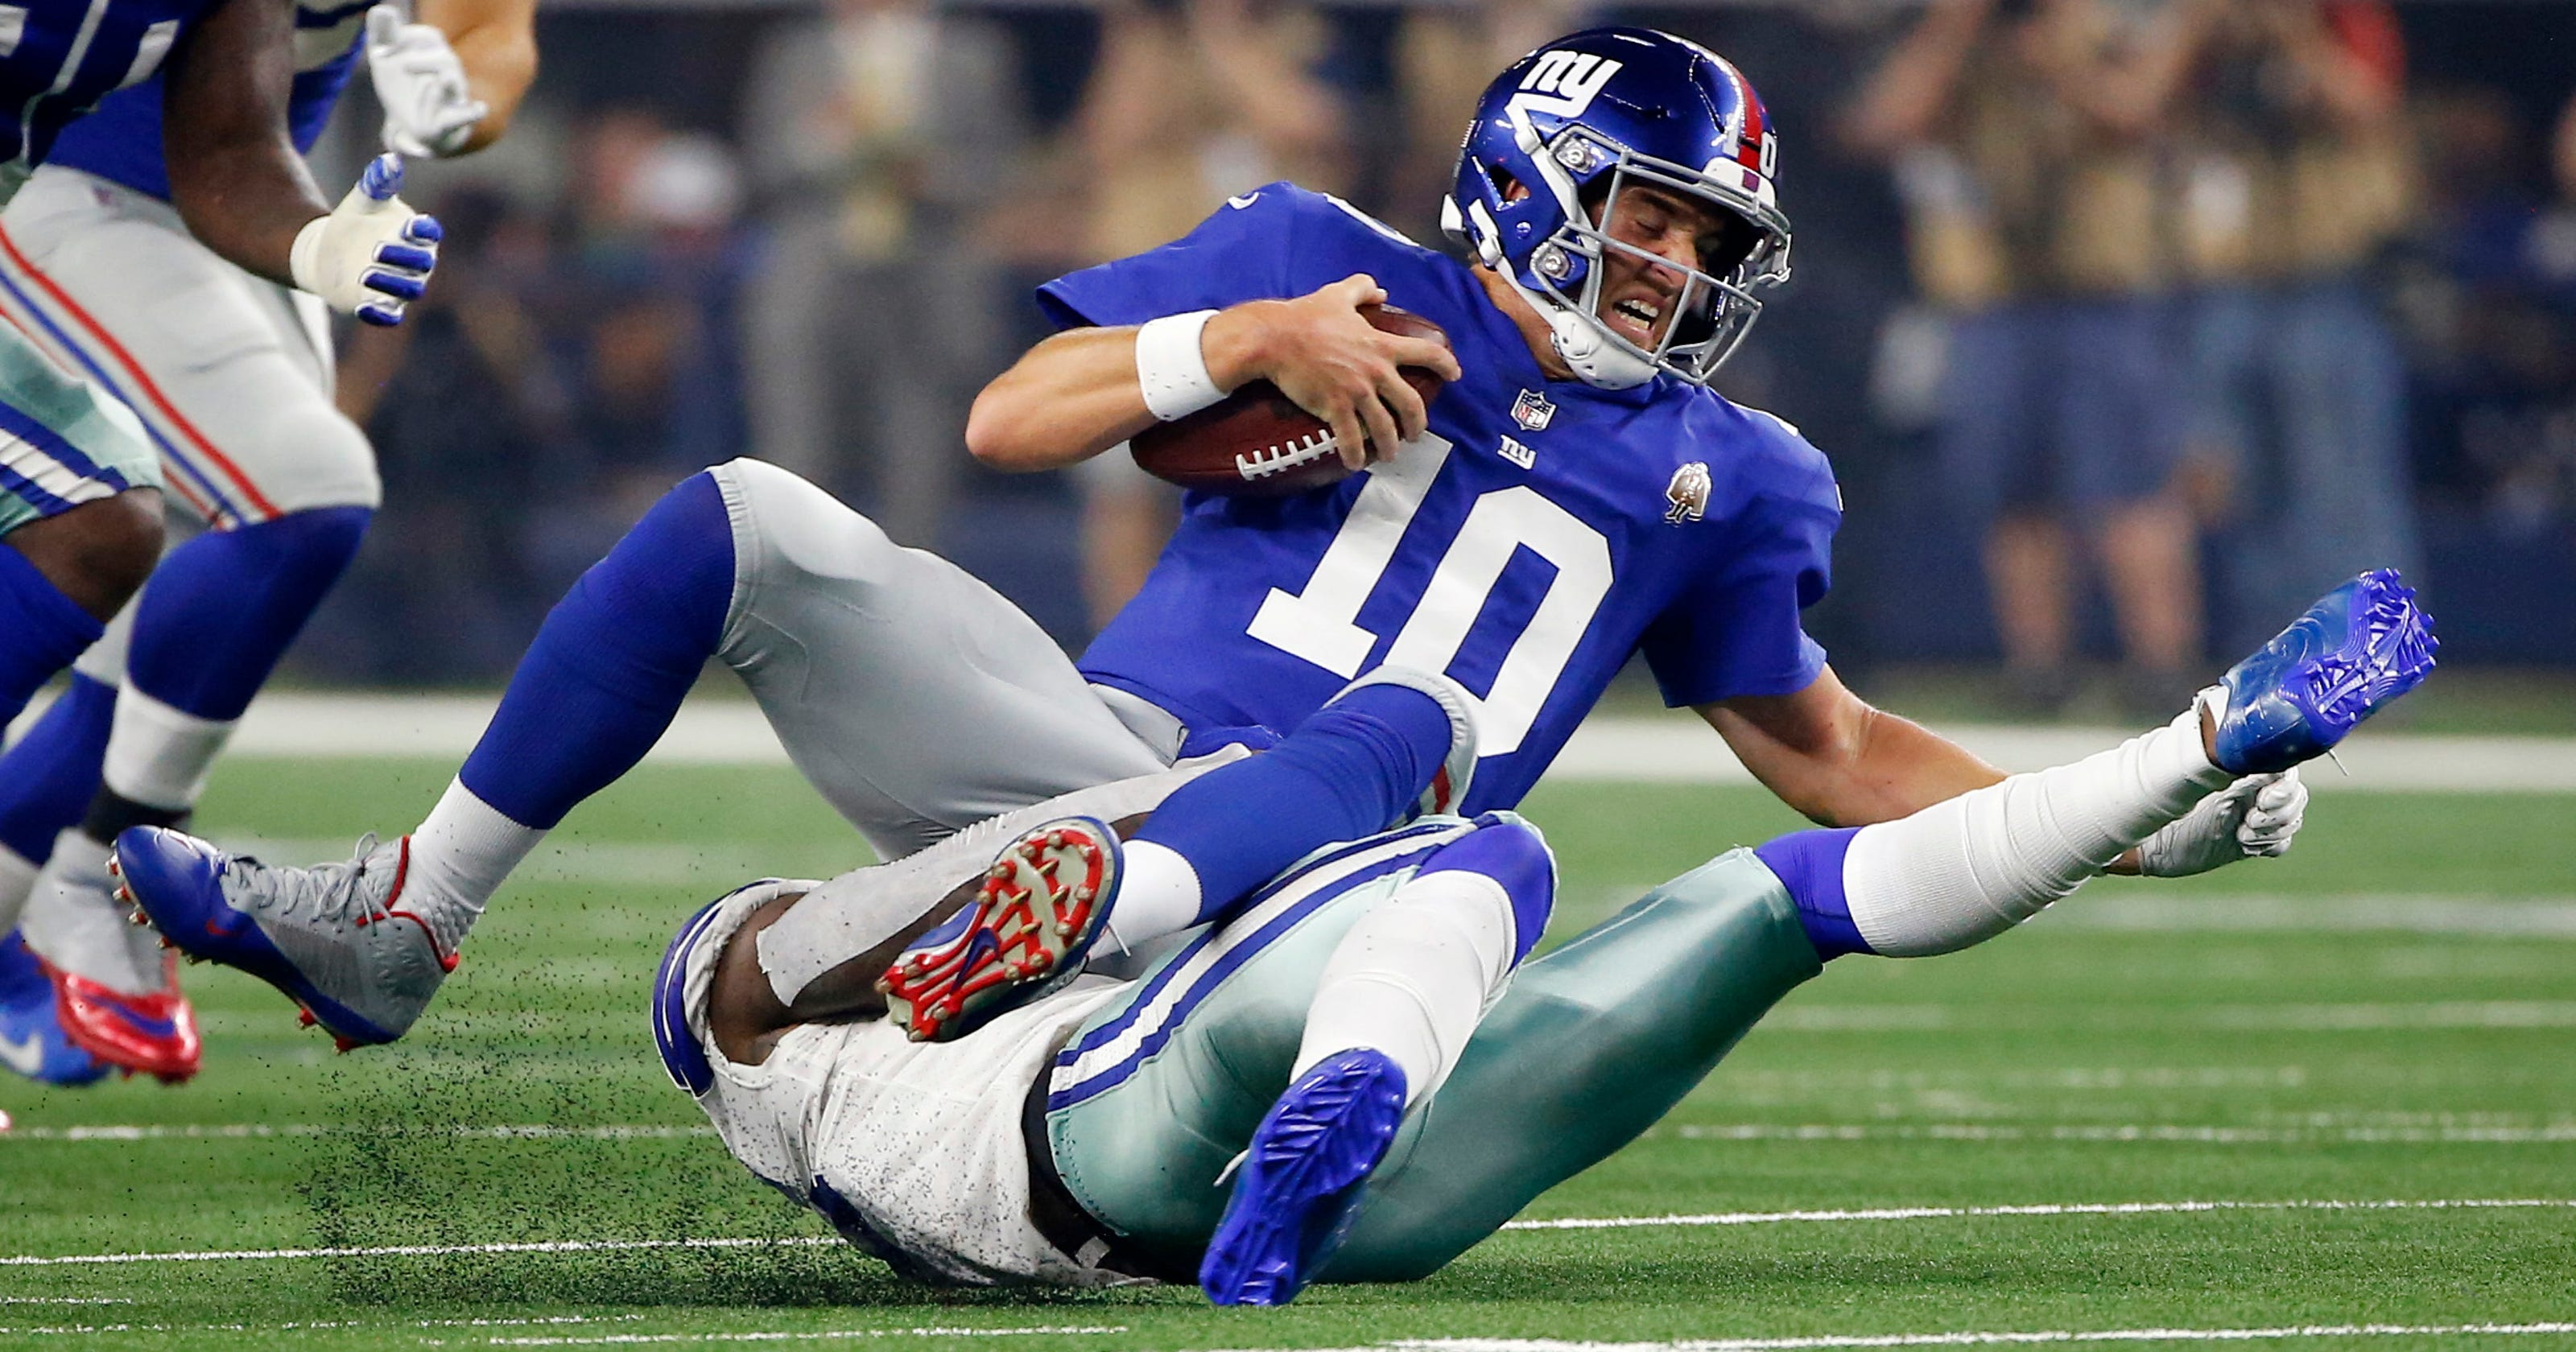 e0e043a59 NY Giants: 5 takeaways from 'unacceptable' loss to Dallas Cowboys